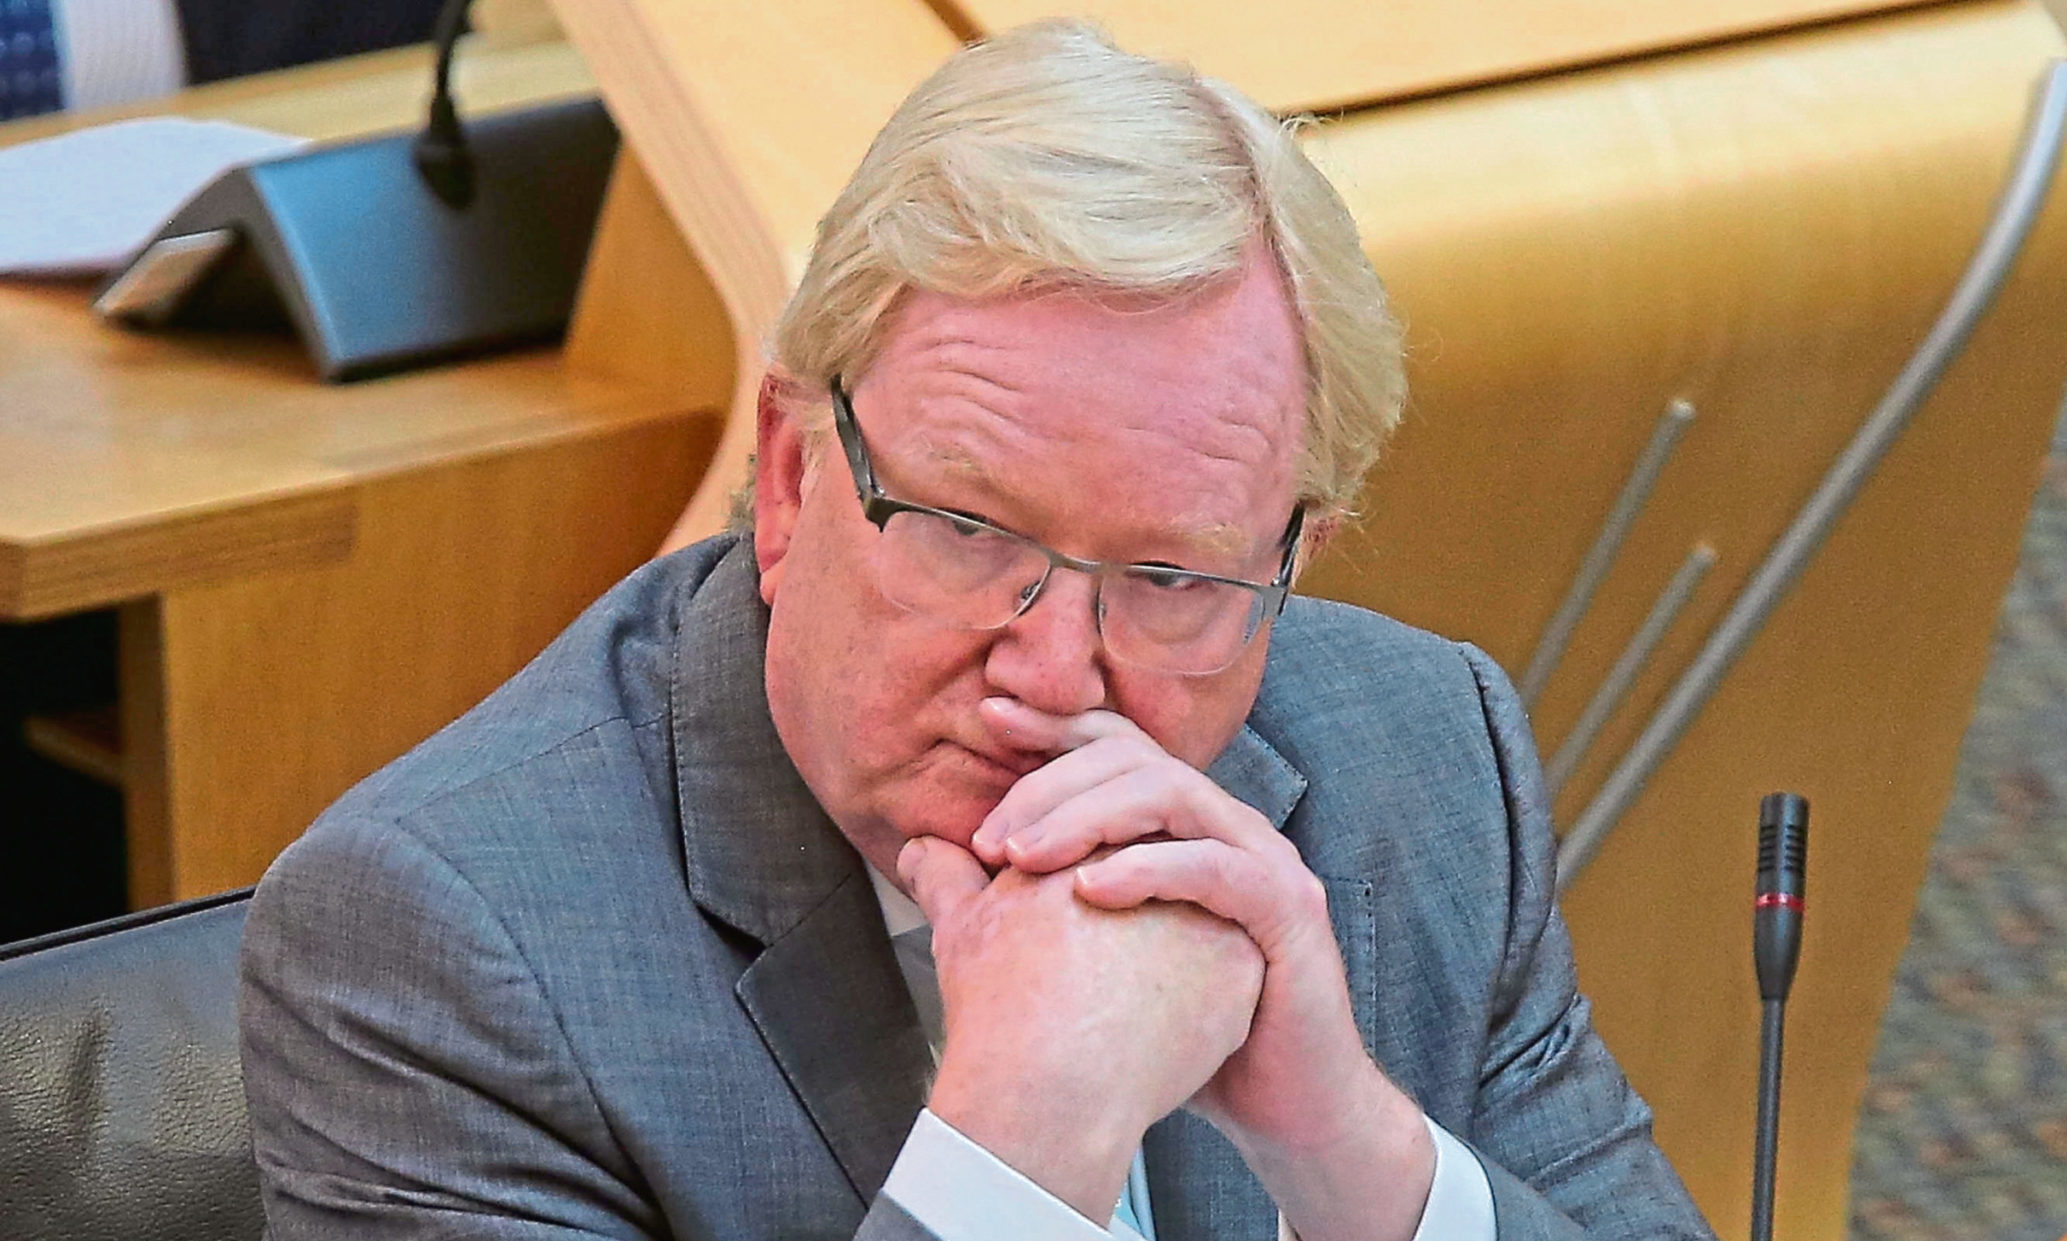 Jackson Carlaw MSP.     Dear picture desk,     Please find attached images from Frist Ministers Questions held at the Scottish parliament, Edinburgh today.     Pool images supplied by Fraser Bremner/Scottish Daily Mail     Andrew Cowan  Media Relations Office fbpic- First Minister's Questions FMQs. Jackson Carlaw MSP Scottish Conservative Leader today during Covid-19 social distancing First Ministers Questions at the Scottish Parliament Holyrood Edinburgh. UK Lockdown Coronavirus. Scotland Scottish politics. Poolphoto/Fraser Bremner/ Scottish Daily Mail Wednesday 3 June 2020.  Picture FRASER BREMNER (date taken)03.06.2020(digital image) tel 07976 414 878 email fbremnerinfo@yahoo.co.uk